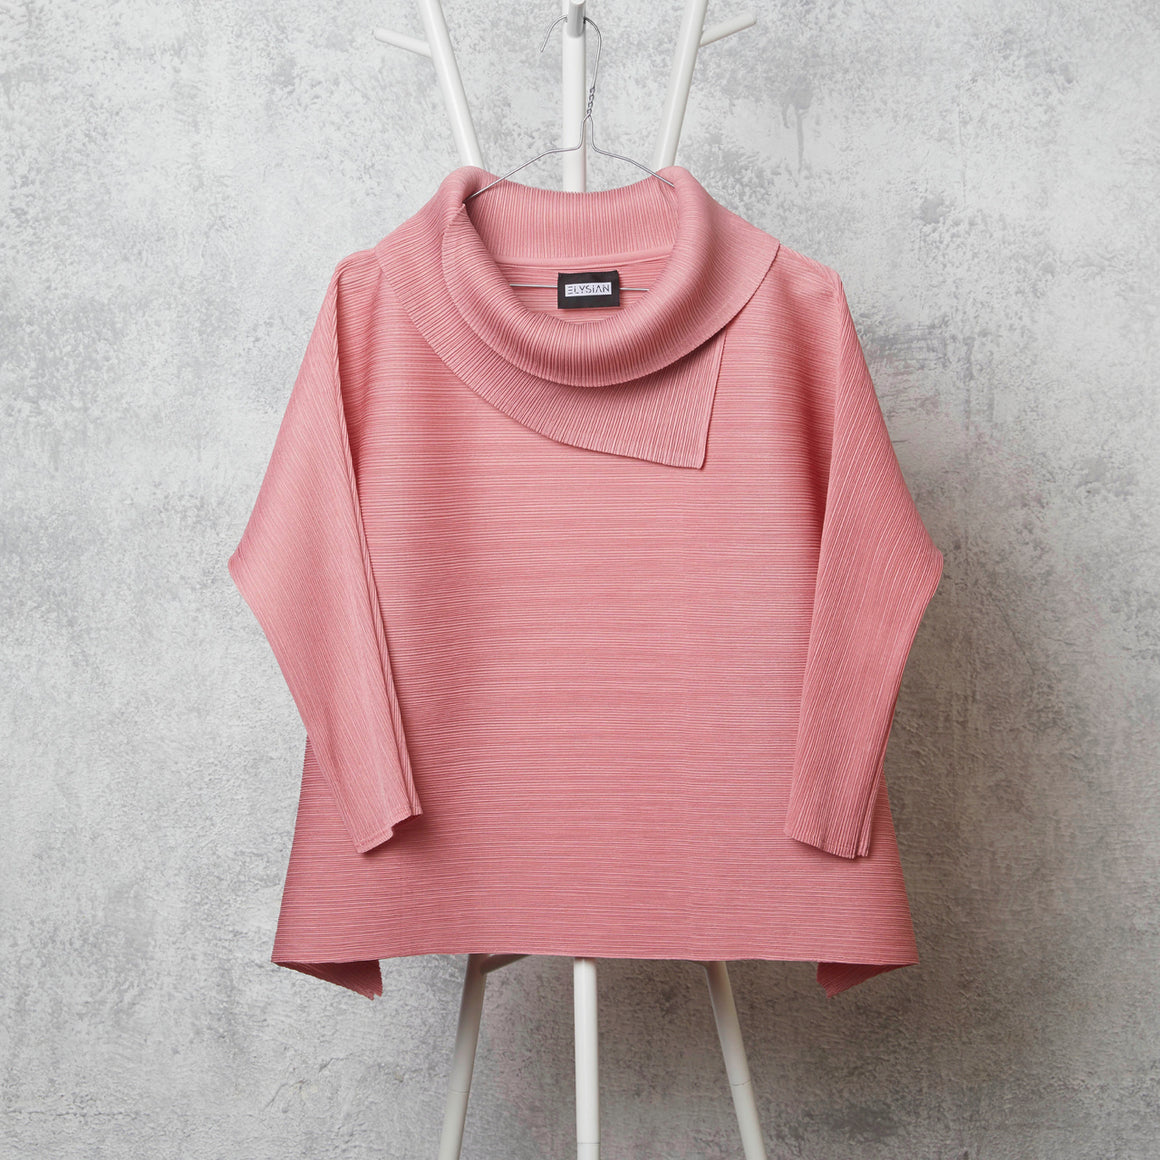 3/4th Sleeve Turtle Neck - Pink